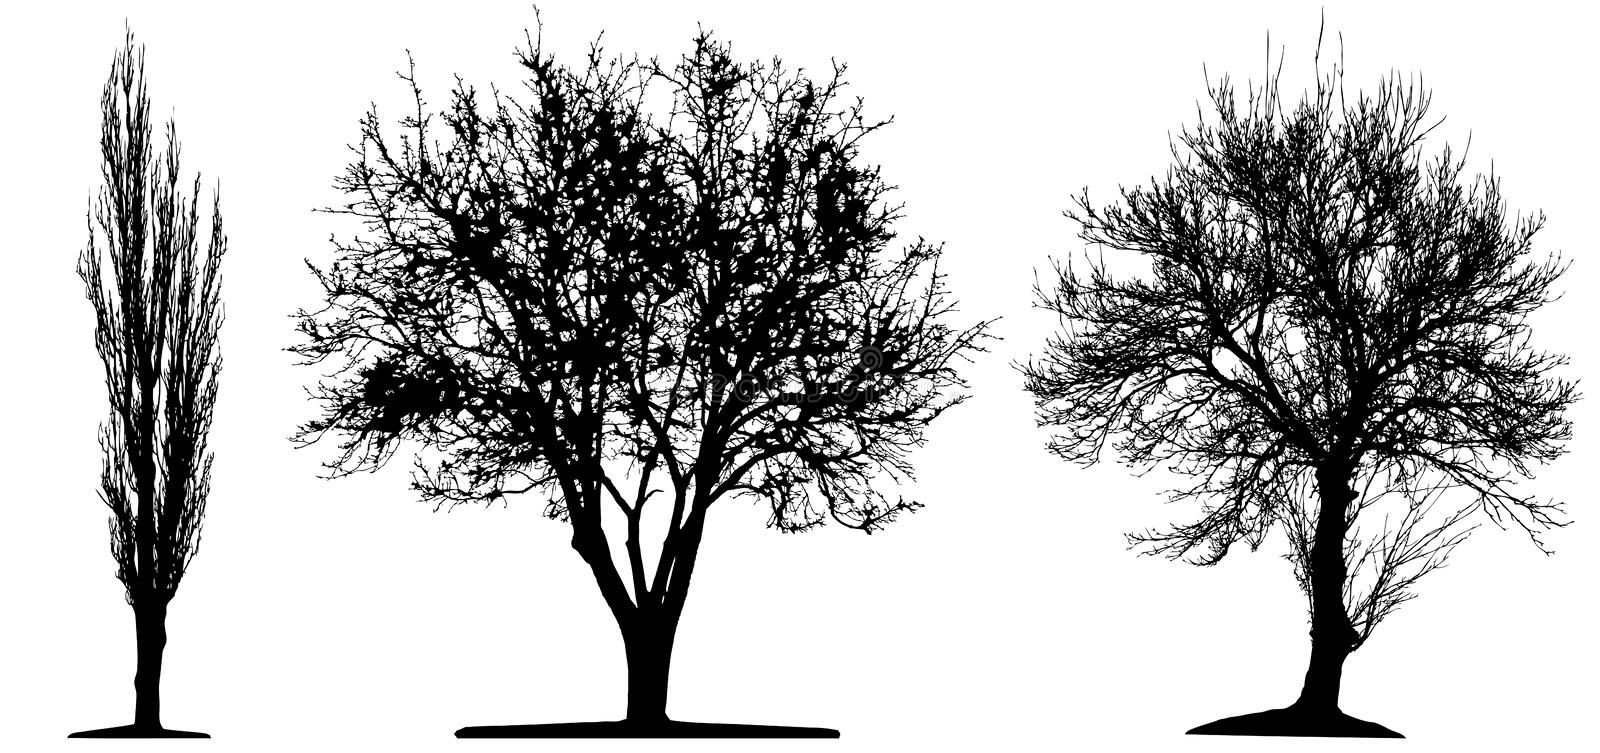 isoleted trees royaltyfri illustrationer